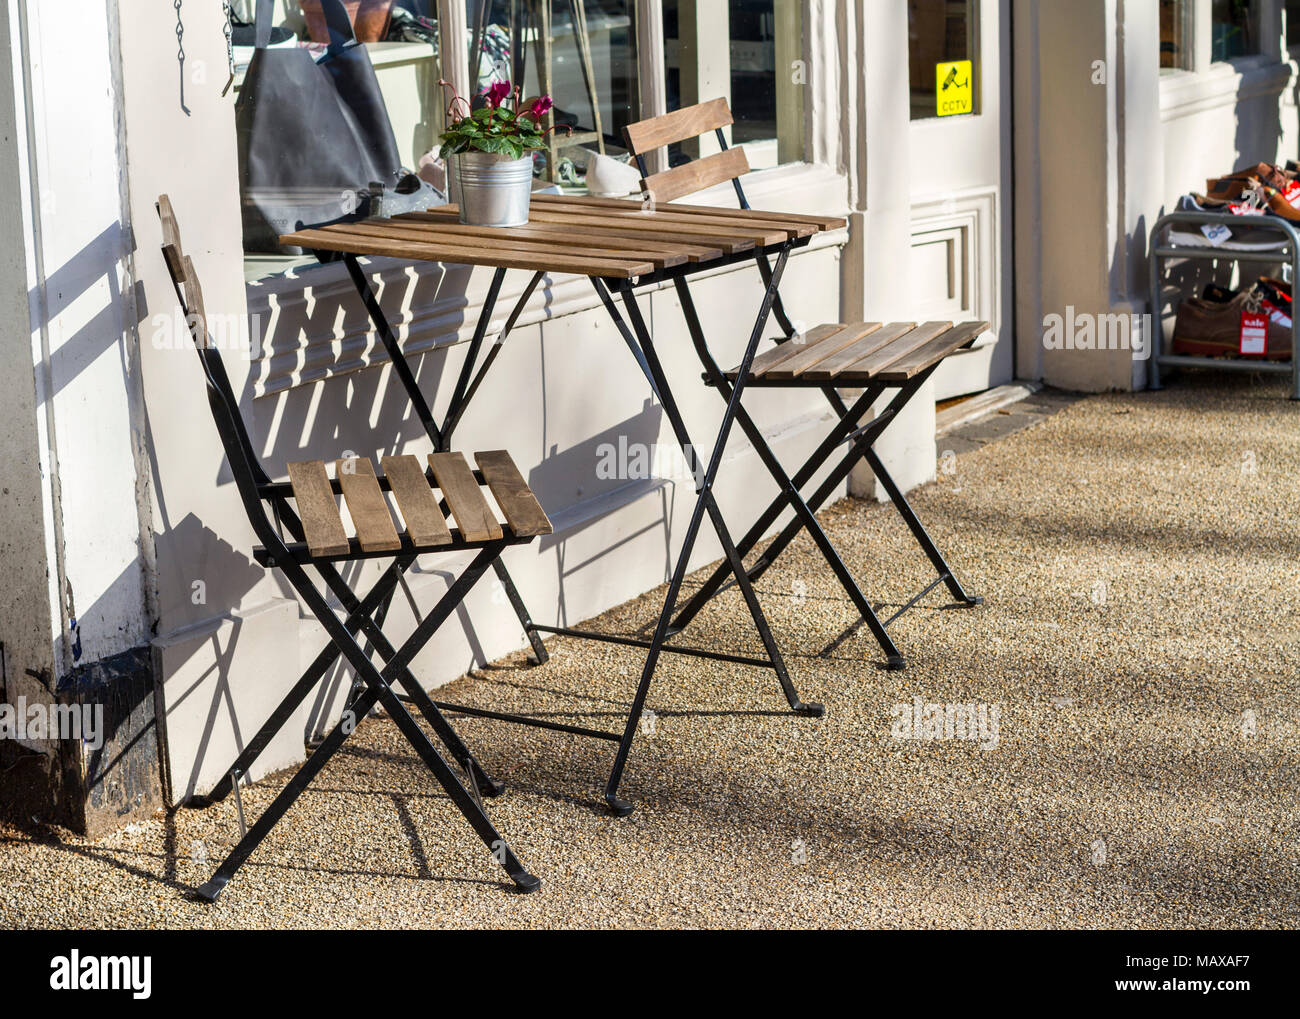 https www alamy com empty wooden table and chairs outside a coffee shop on a bright sunny day london uk image178829259 html